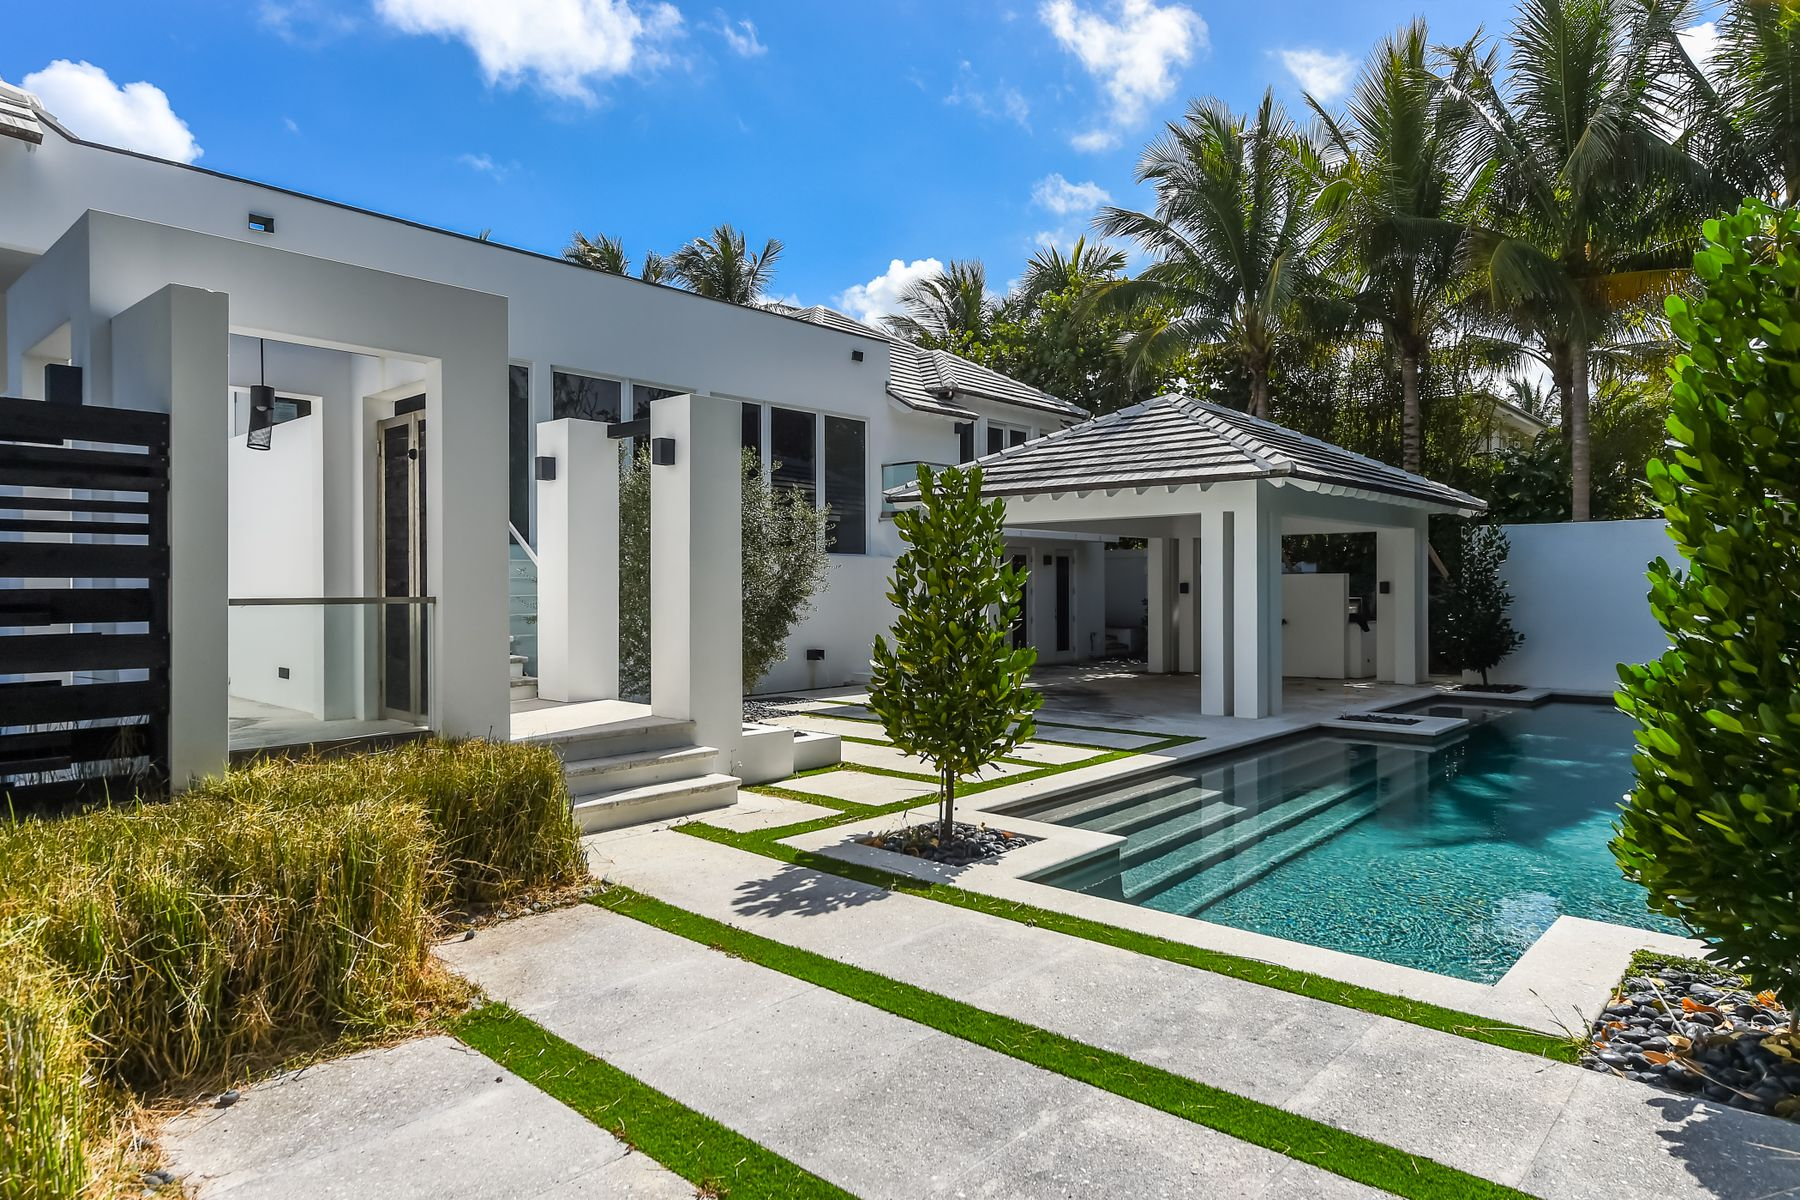 Single Family Home for Active at 1290 N Ocean Blvd 1290 N Ocean Blvd Palm Beach, Florida 33480 United States